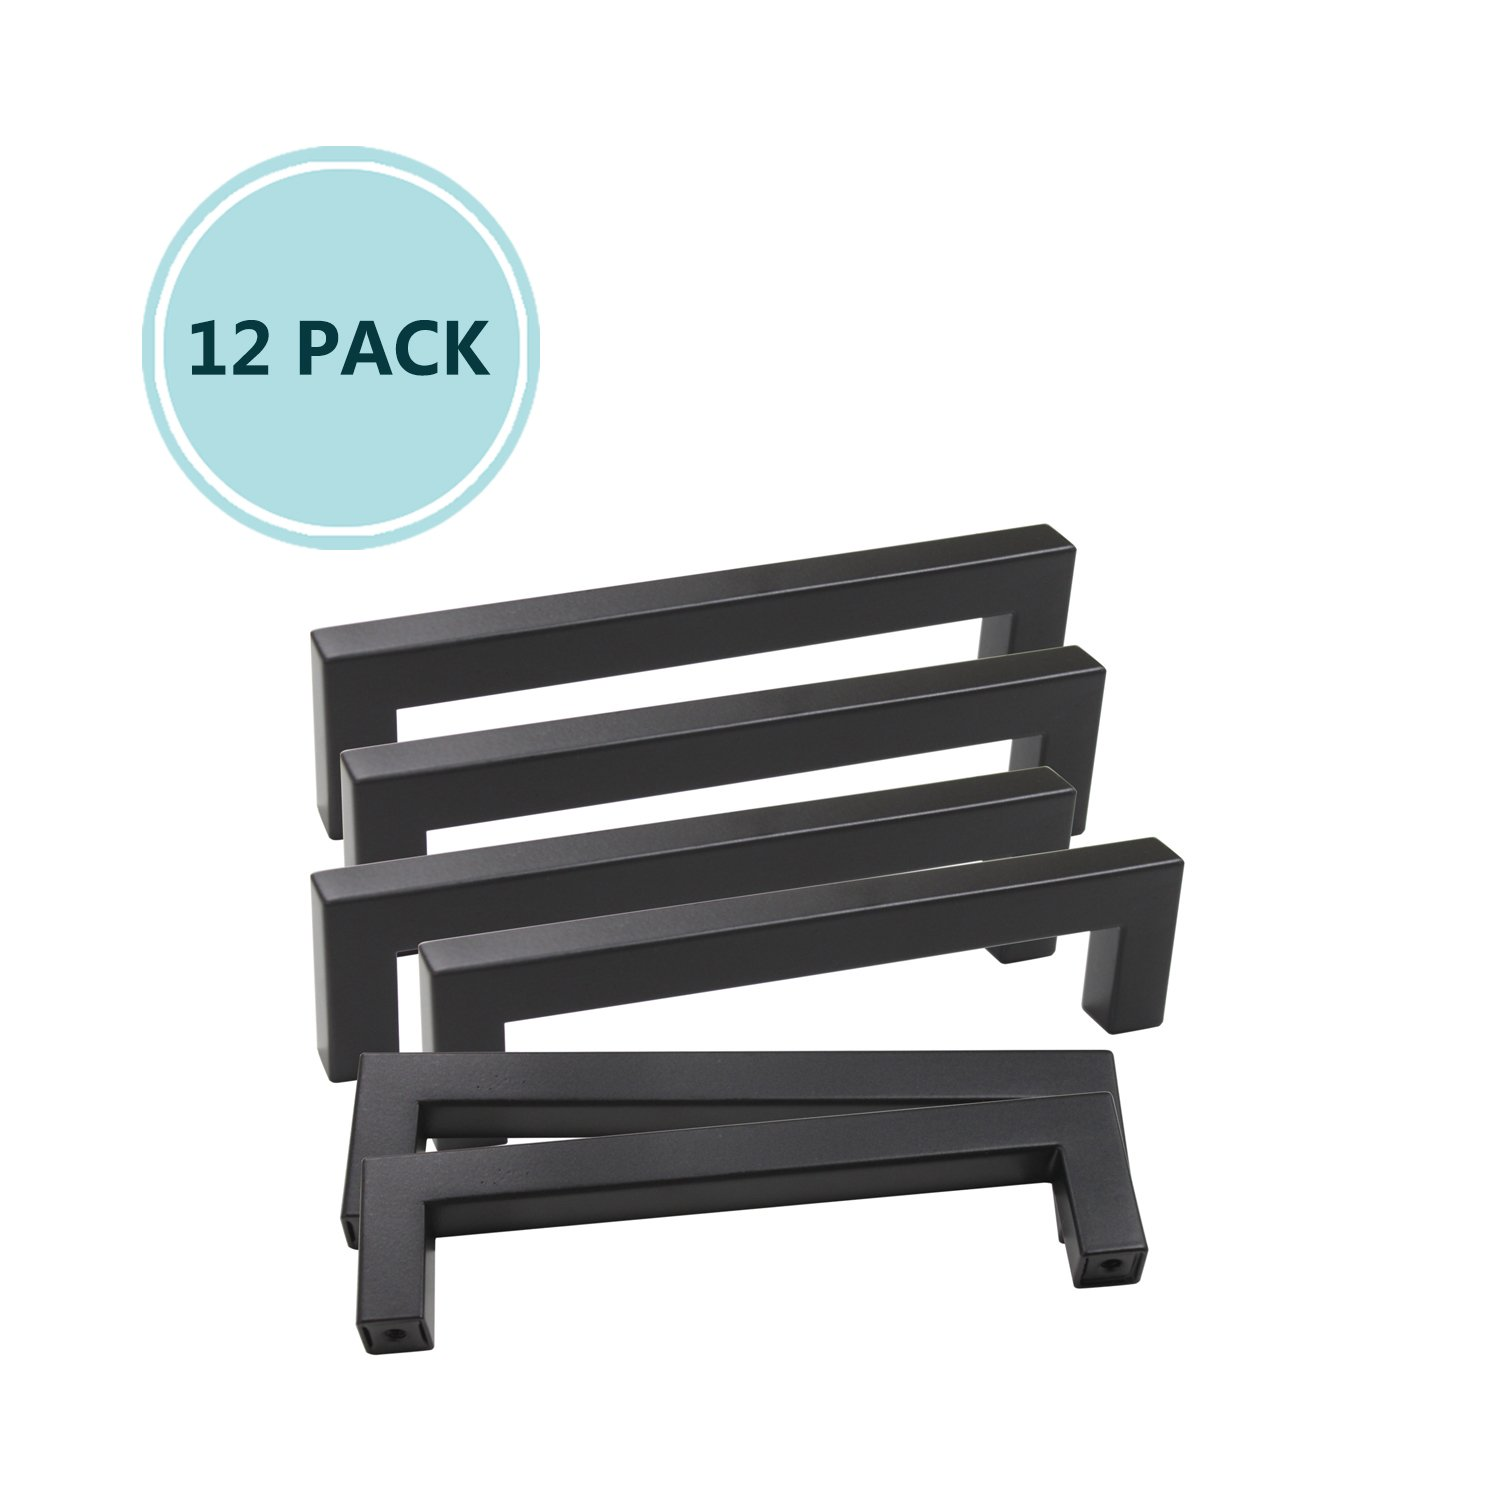 12 Pack Drawer Handle Black Stainless Steel, Square Bar Cabinet Pull for Kitchen and Bathroom Cabinets Door, 5'' Hole Center, Overall Lenth 5.5''